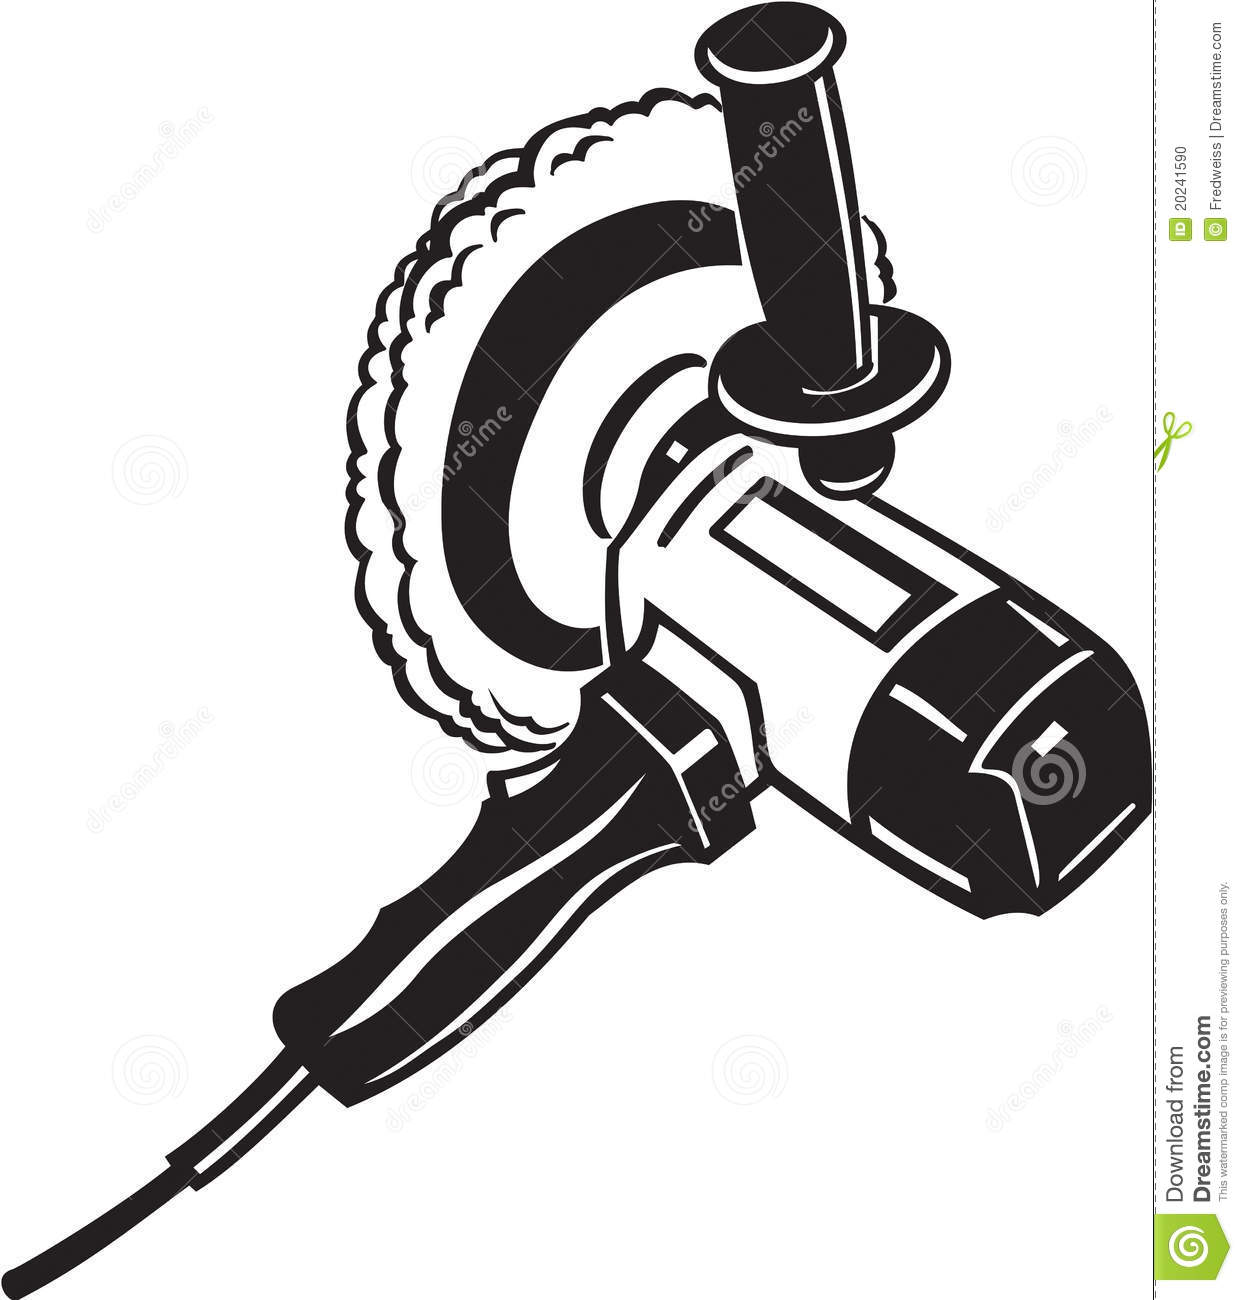 Electric Buffer Tool Stock Vector Illustration Of